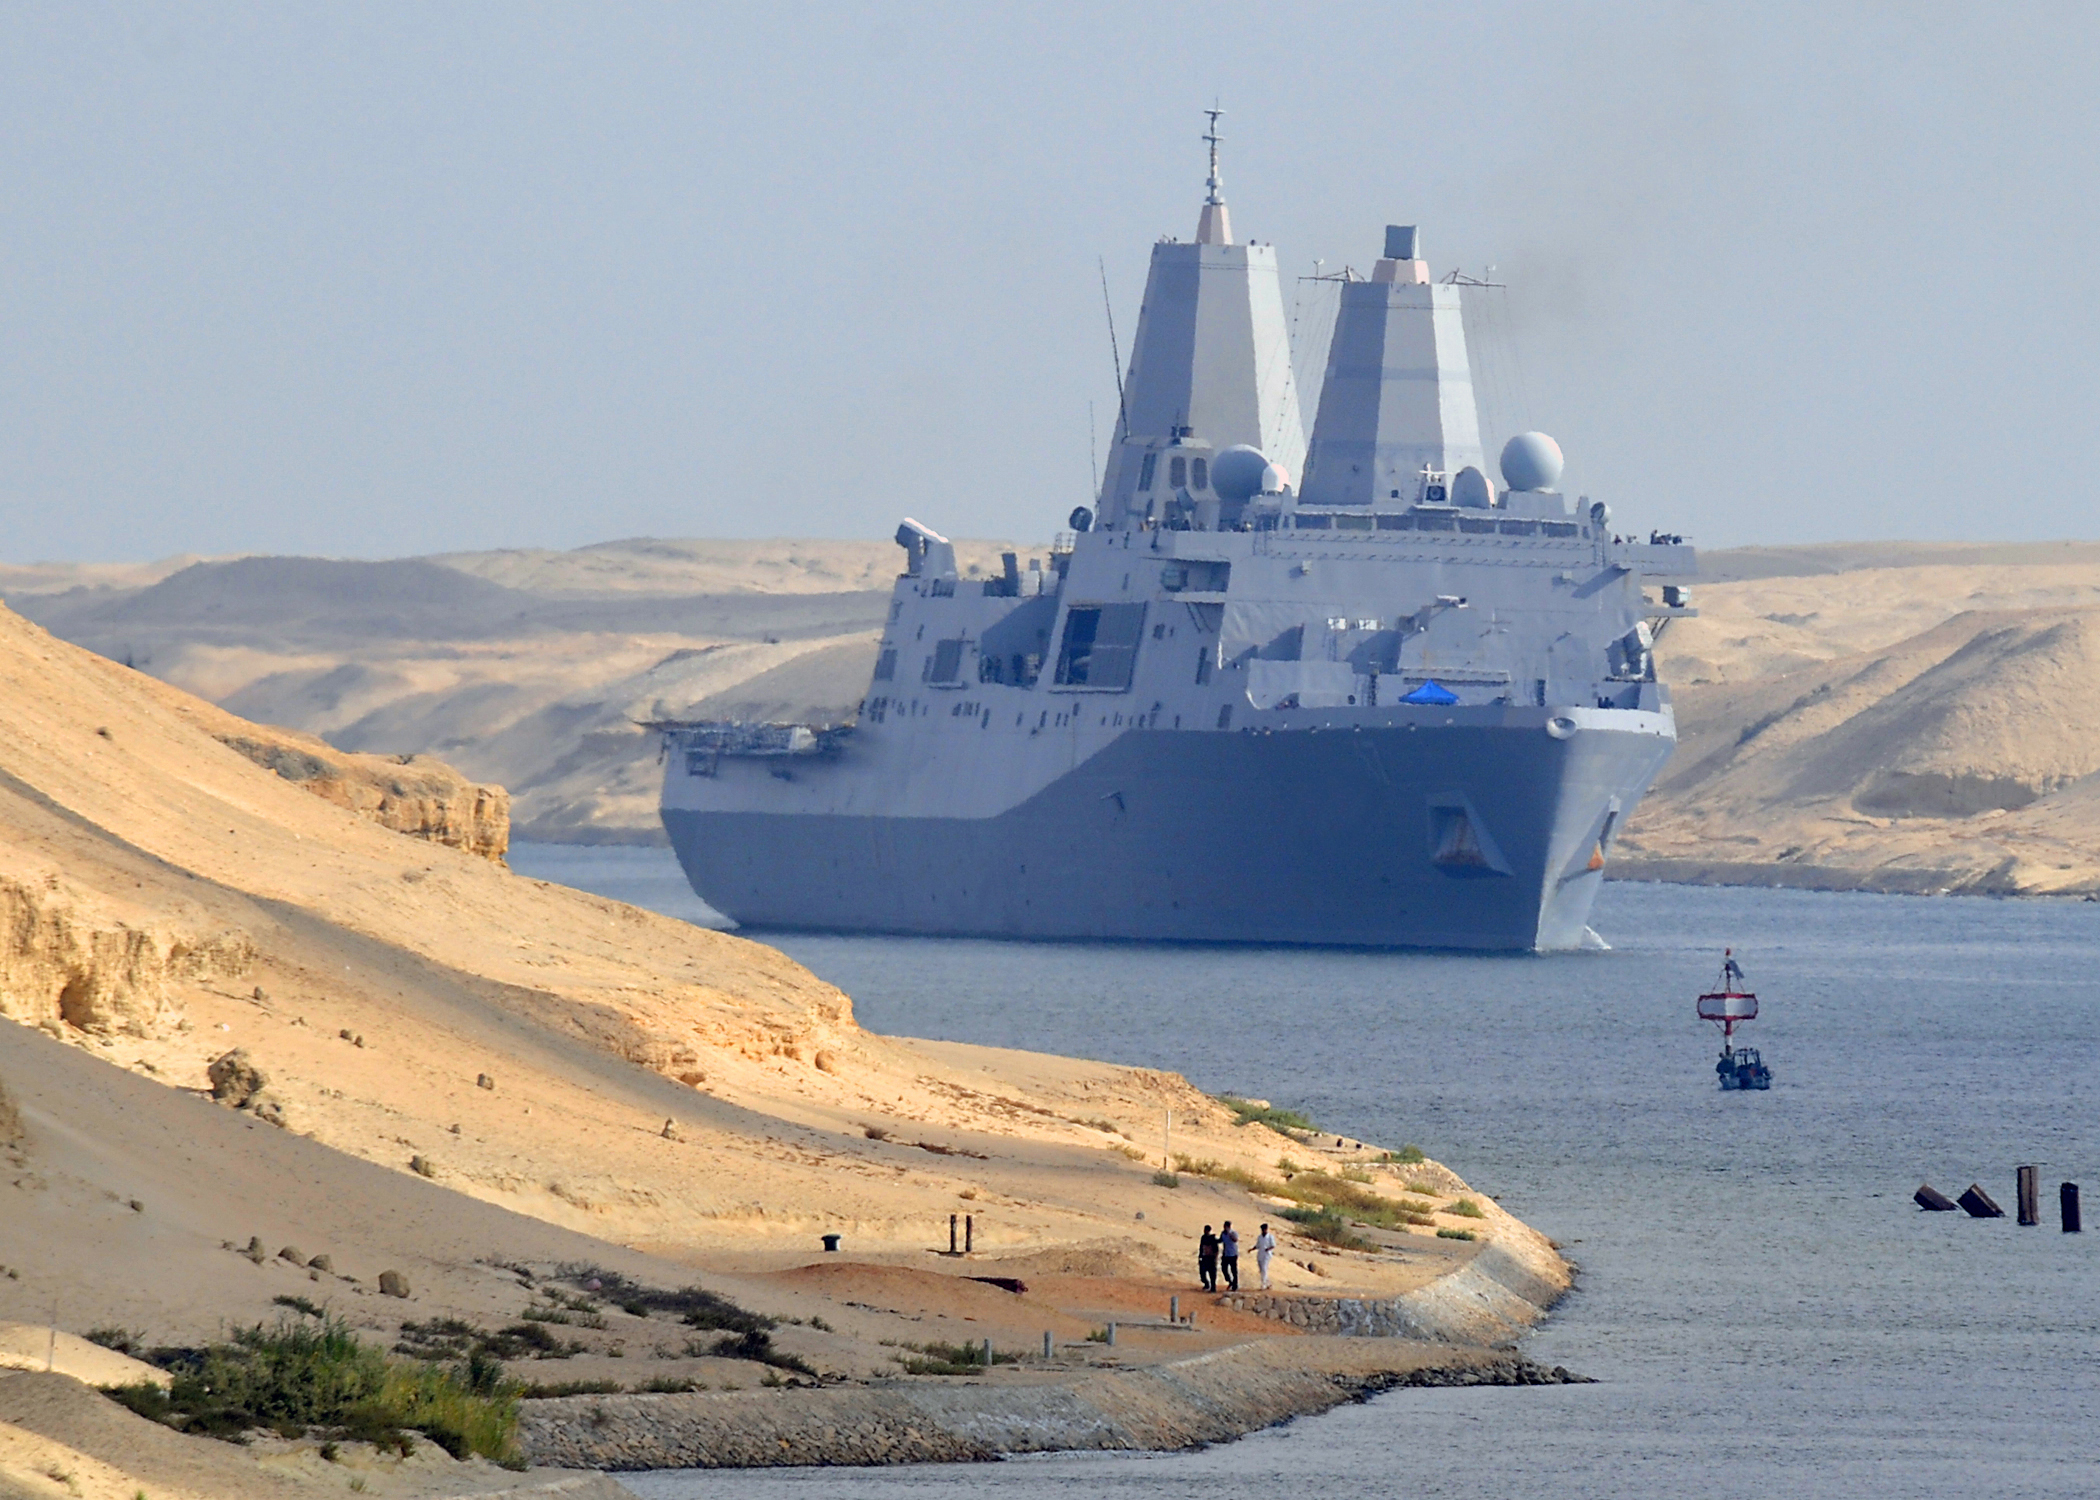 USS San Antonio (LPD-17) transits through the Suez Canal in 2008. US Navy Photo